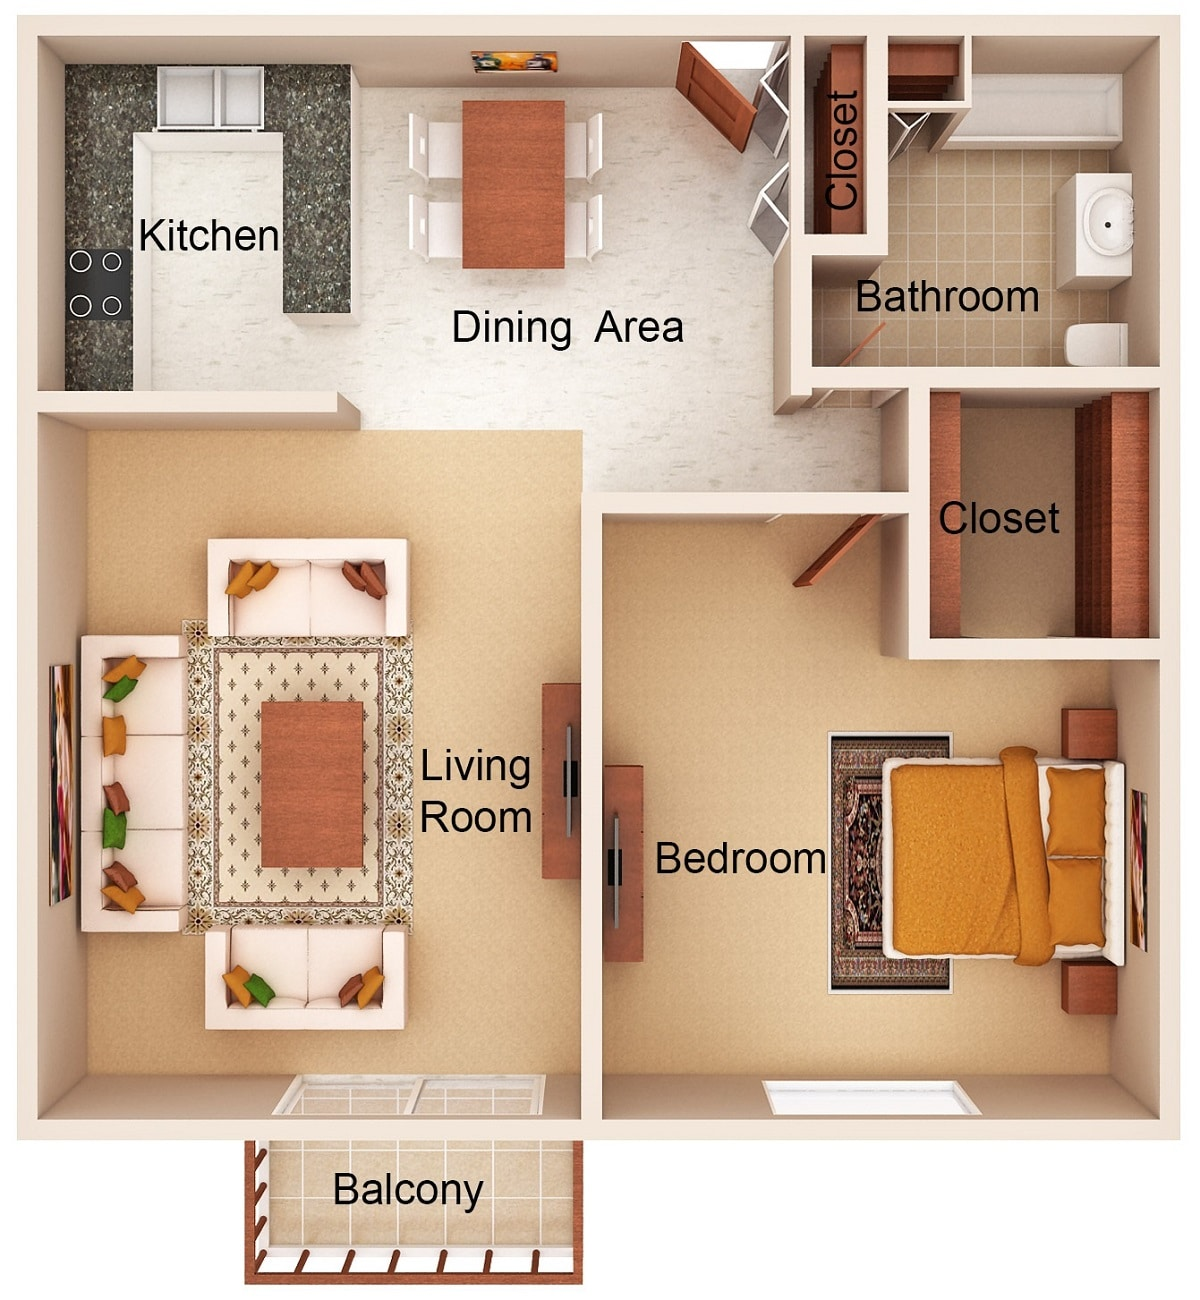 floor plans fairway green apartments residents enjoy our large standard one bed room at 750 sq ft carpet and tile flooring all apartments have newer appliances and a large bathroom